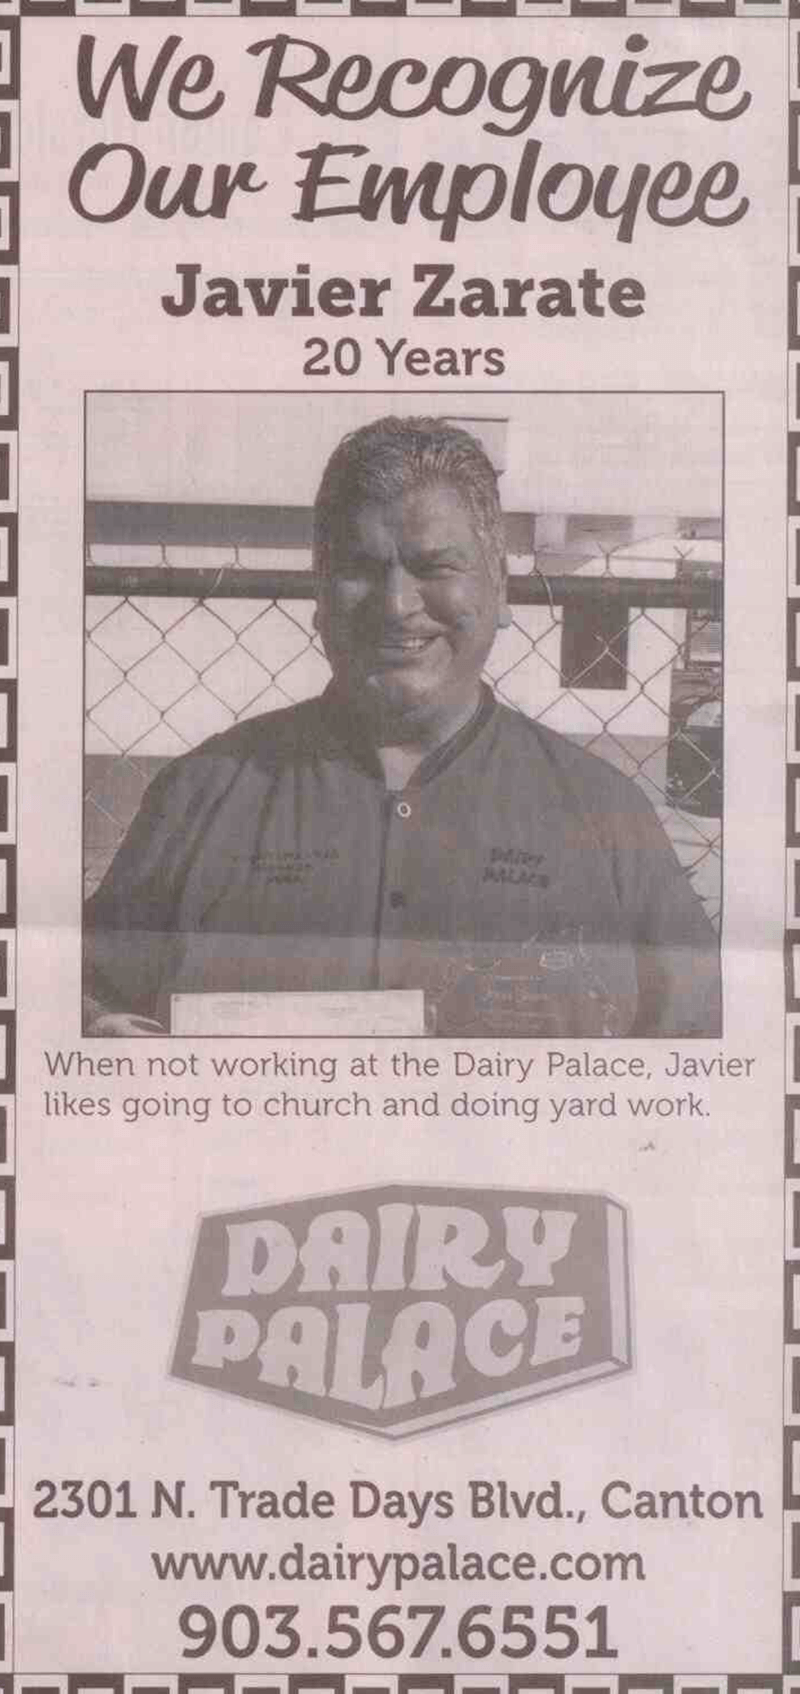 Javier-Zarate-Canton-TX-Dairy-Palace-20-years